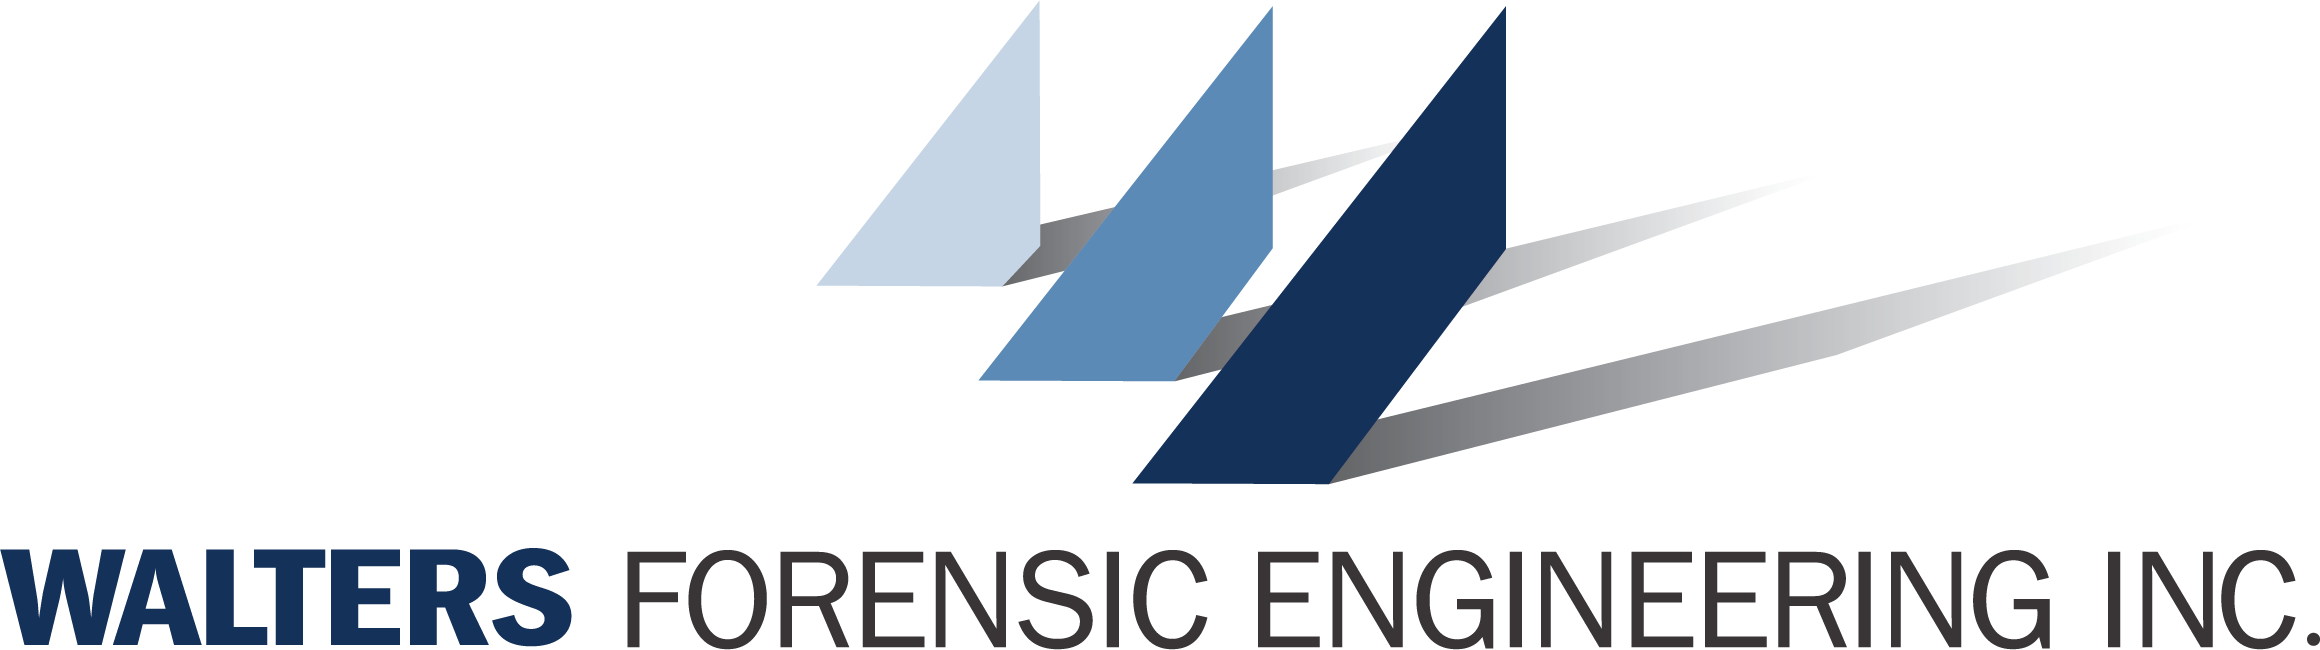 Walters Forensic Engineering Inc.